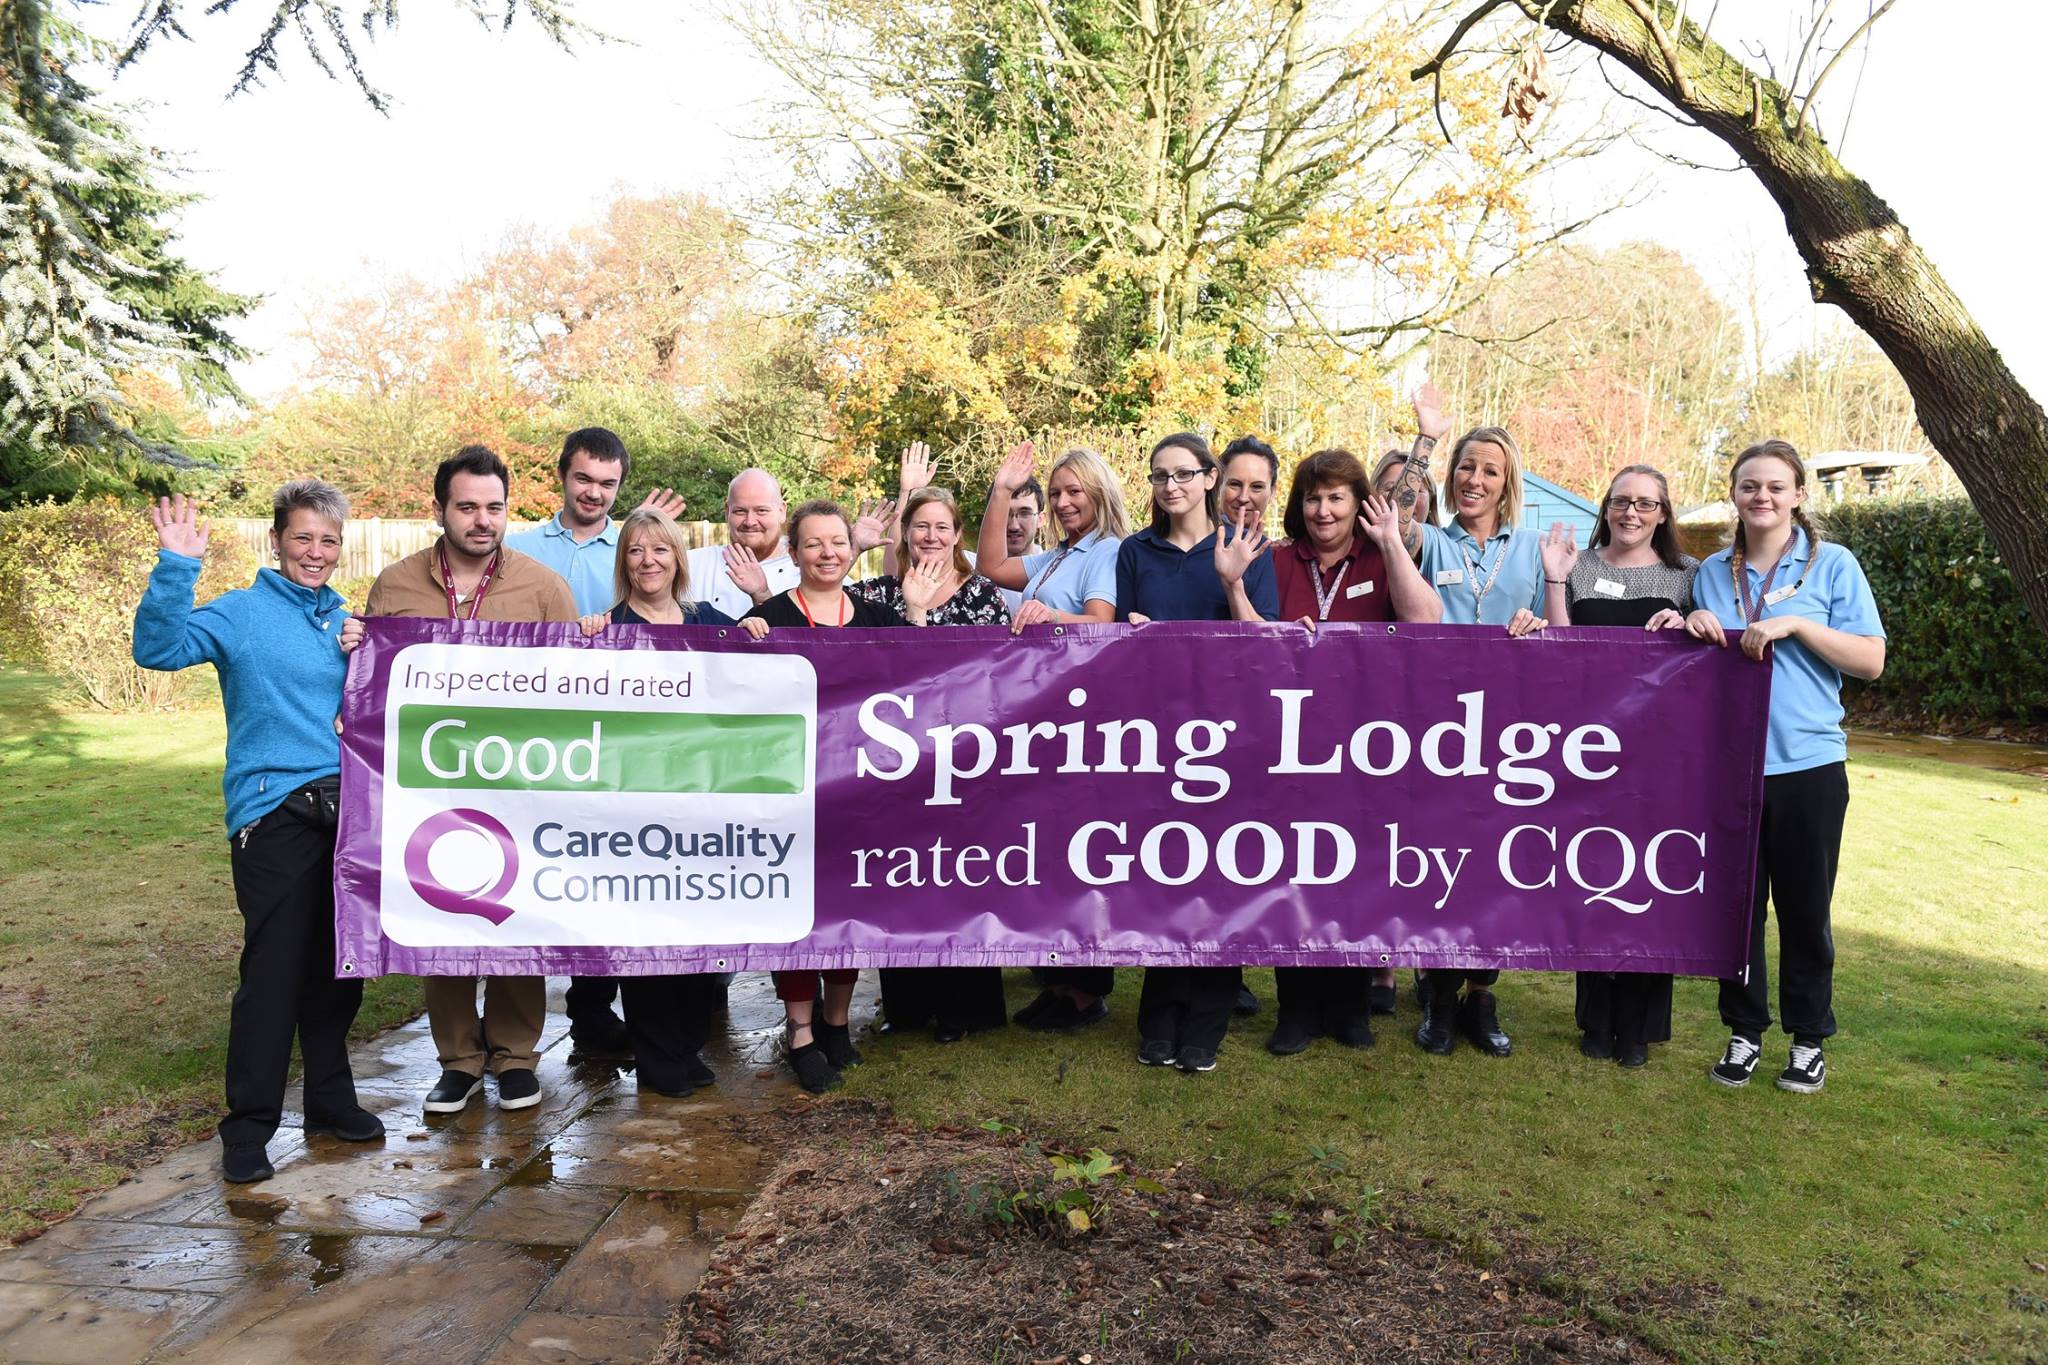 Well done Spring Lodge for your great CQC report!